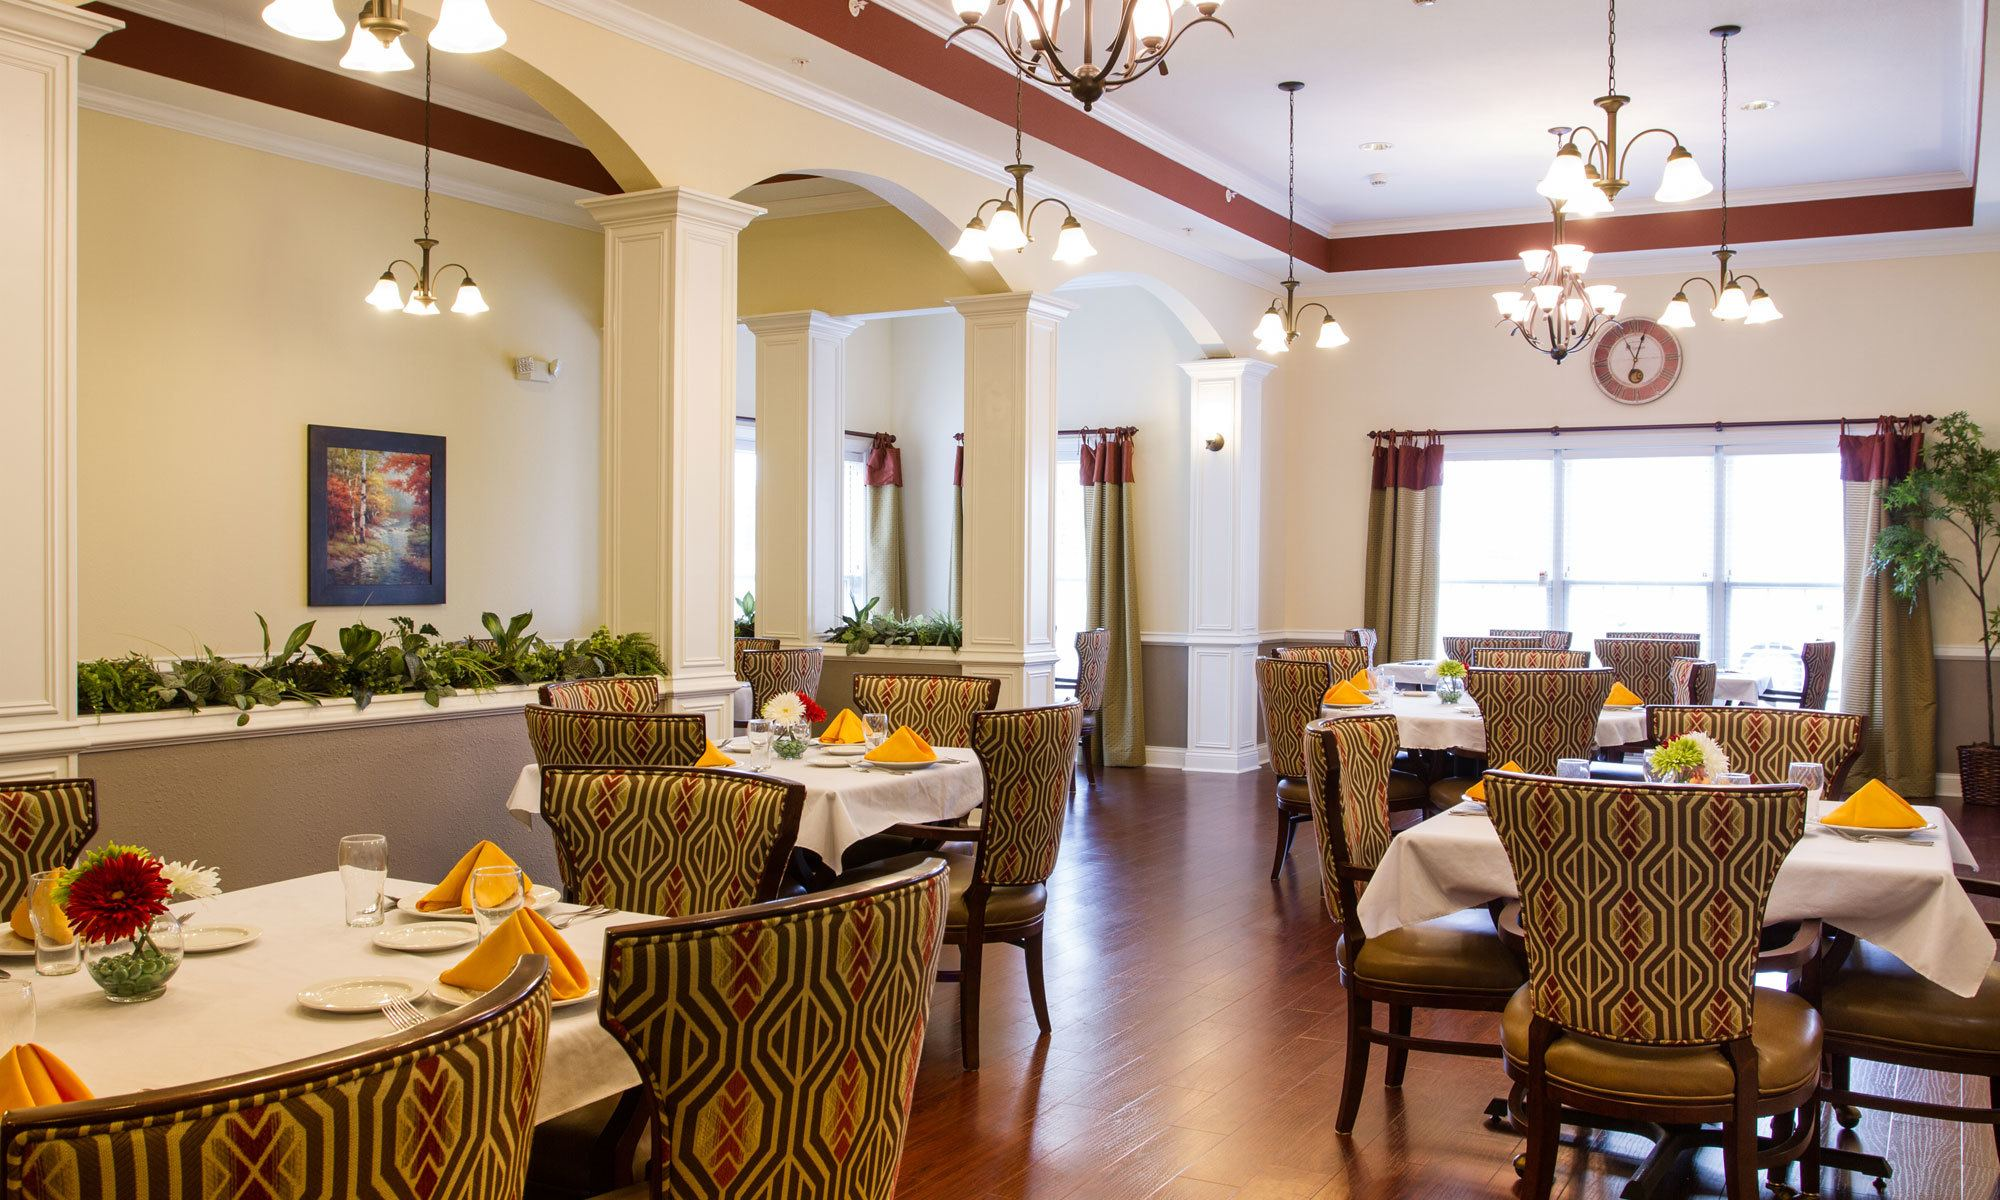 Premier assisted living care at Carriage Crossing in Arcola.